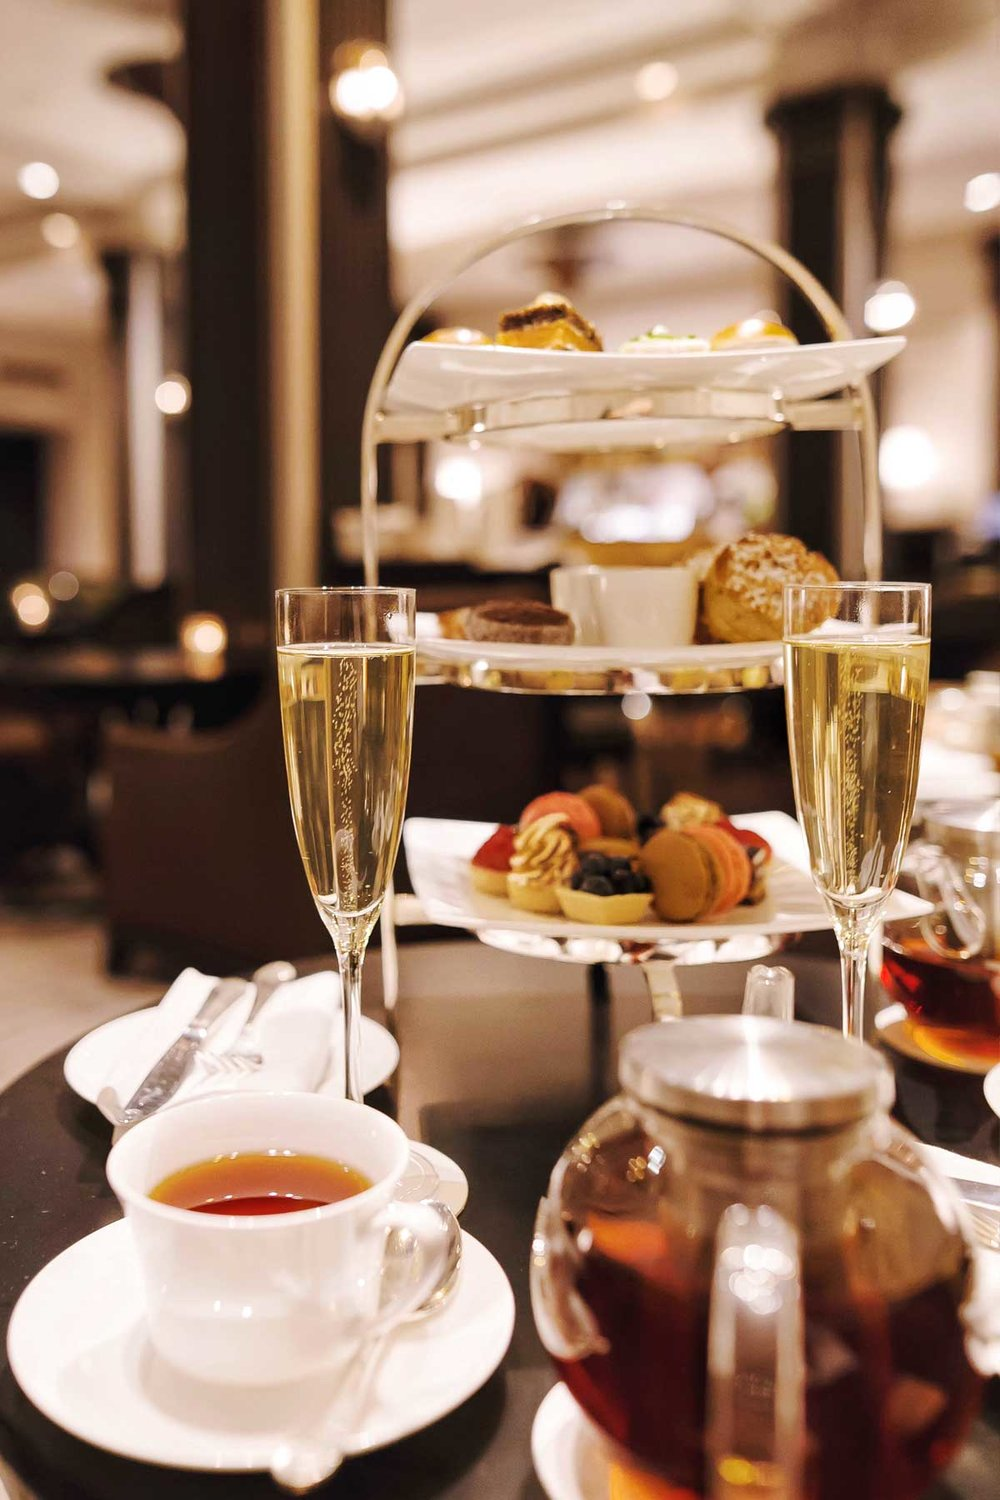 Afternoon Tea - Experience what Town & Country Magazine has recognized as the Best Afternoon Tea in New York City!